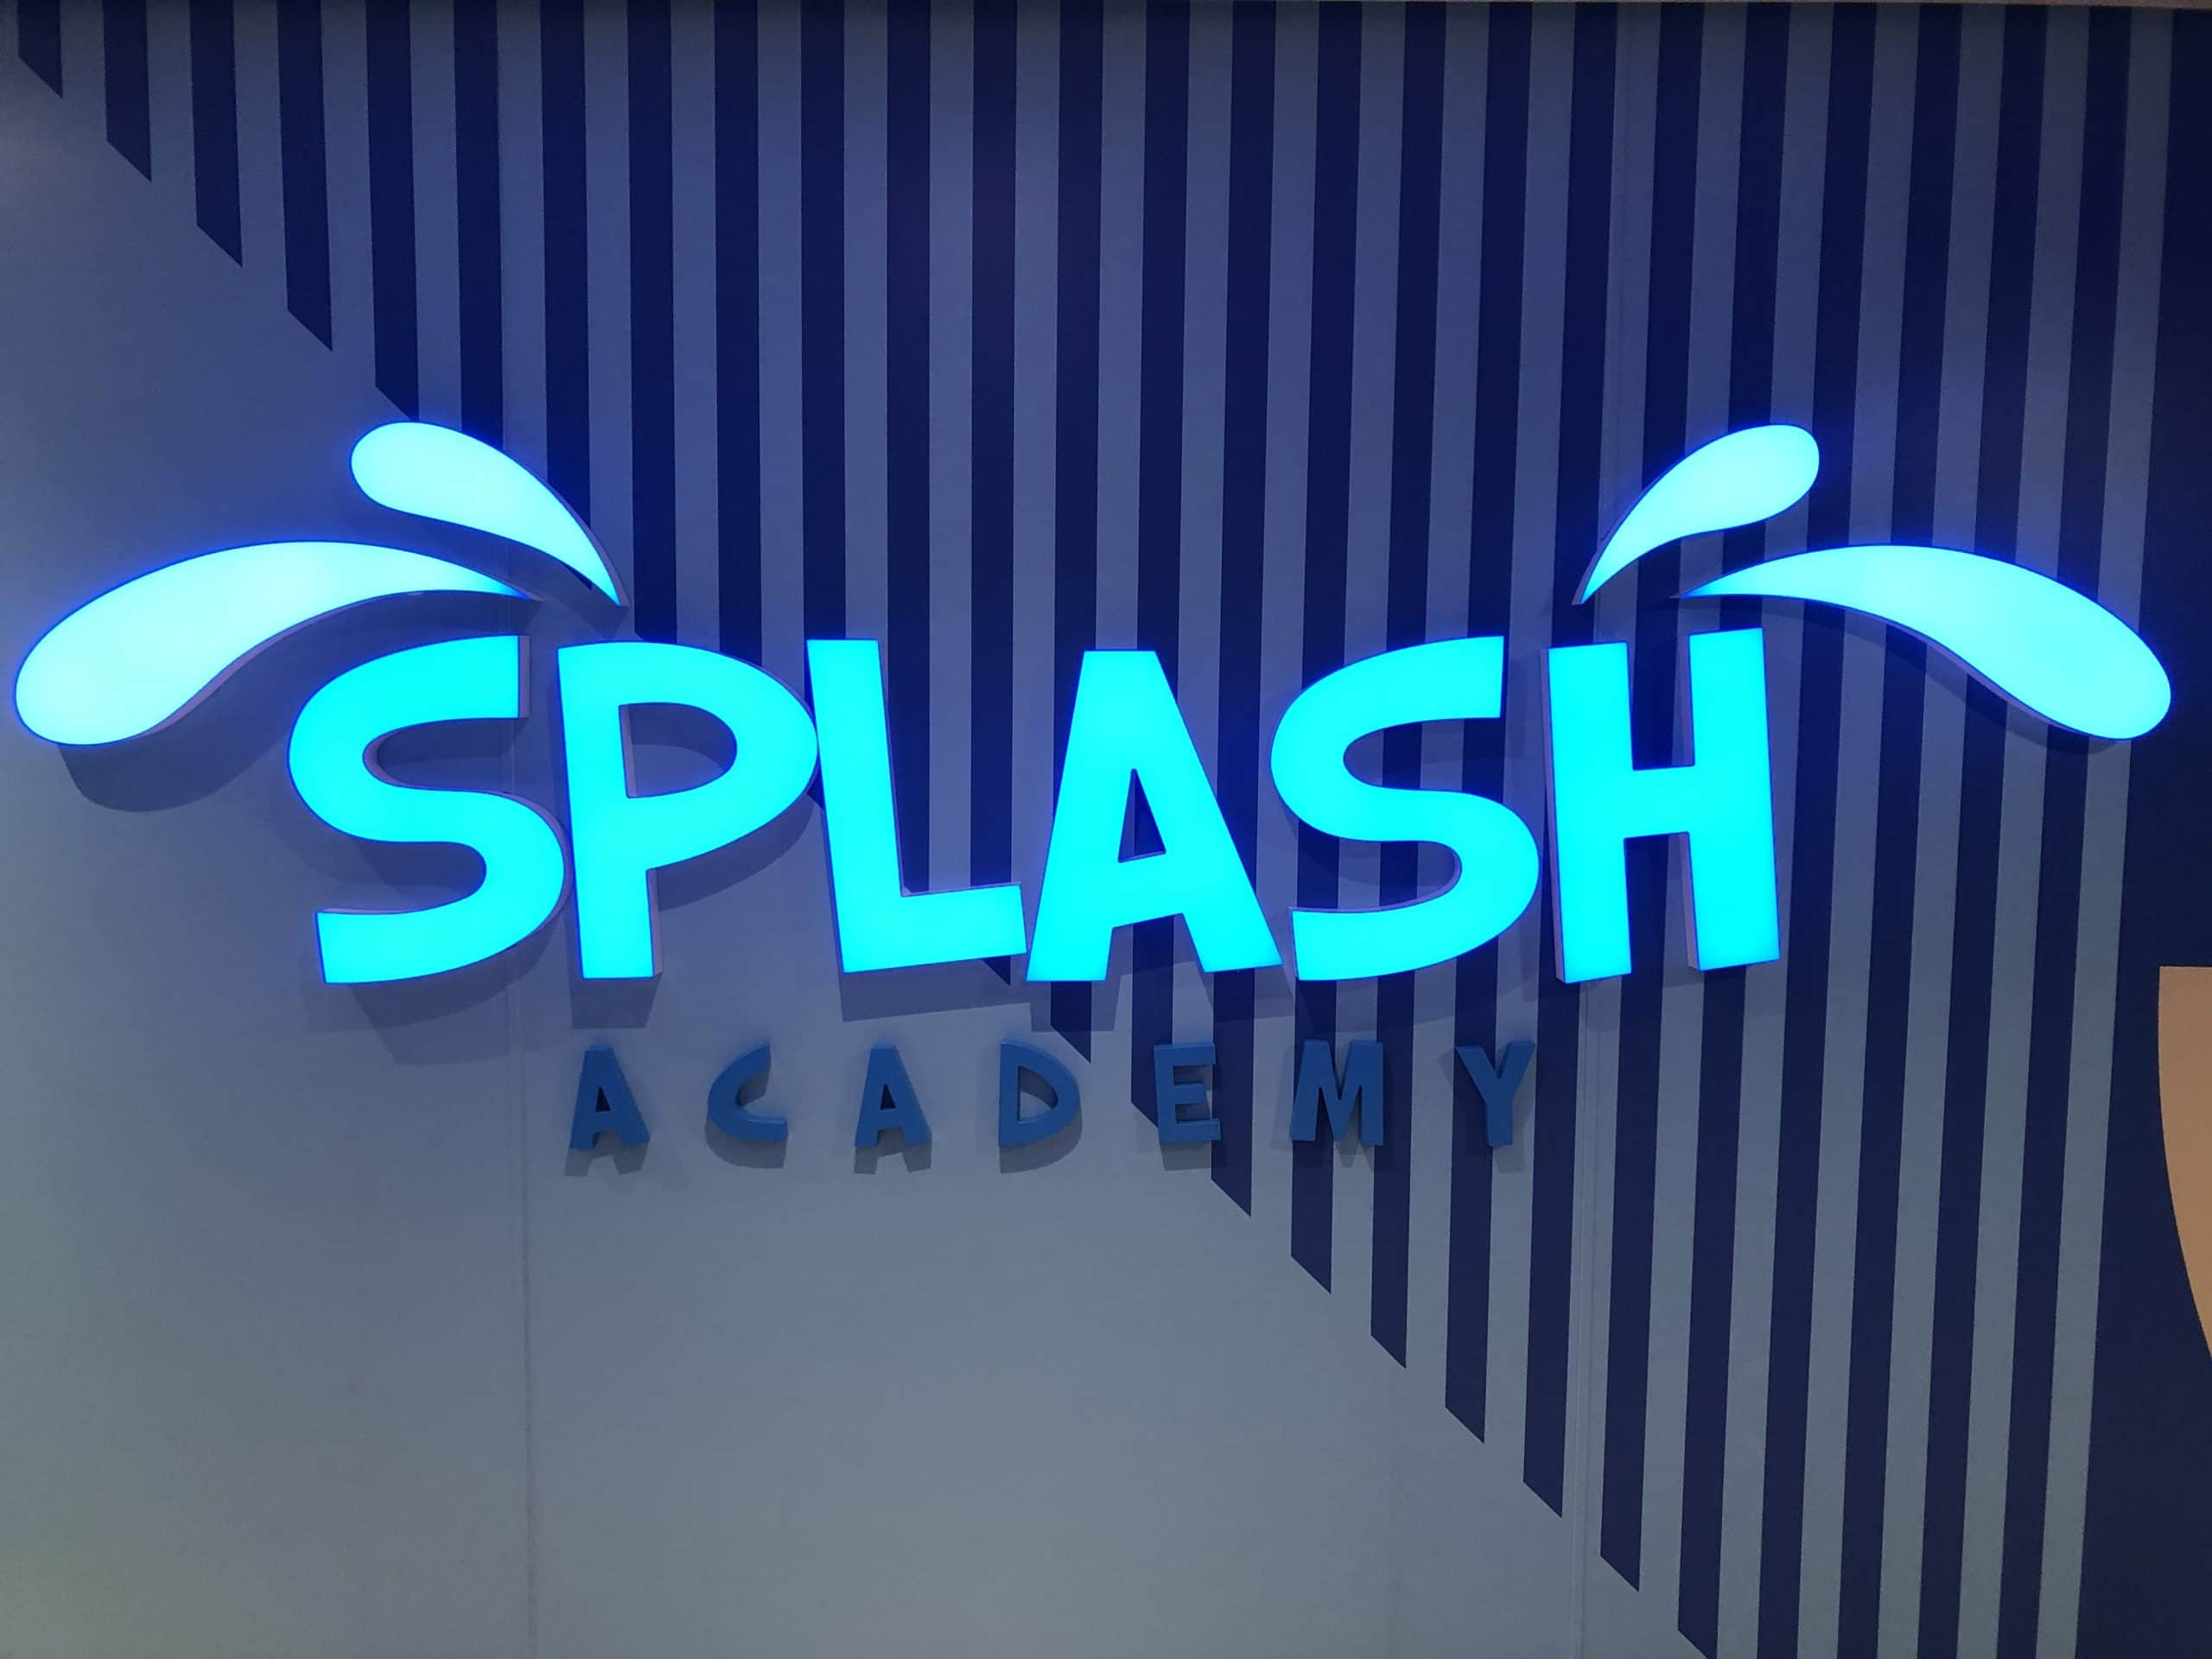 The Splash academy sign the Norwegian Encore